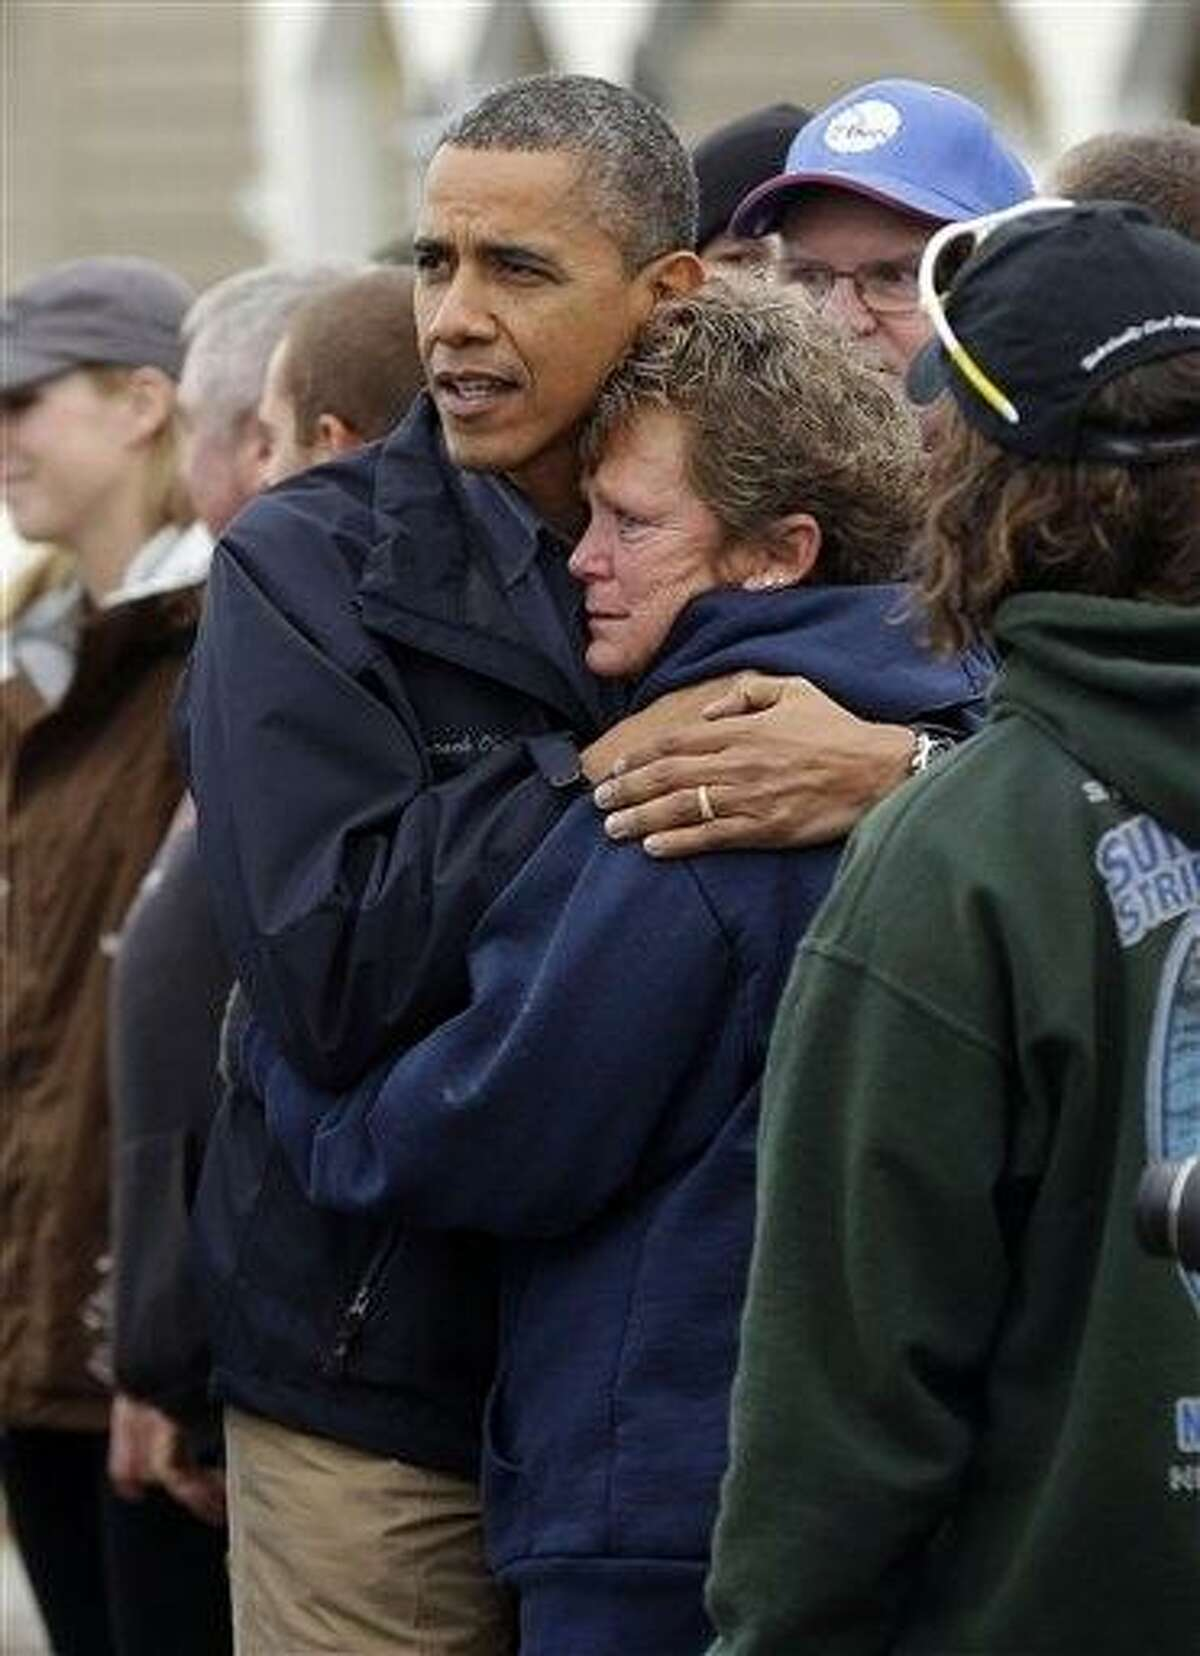 President Barack Obama, left, embraces Donna Vanzant, right, during a tour of a neighborhood effected by Hurricane Sandy, Wednesdayin Brigantine, N.J. Vanzant is a owner of North Point Marina, which was damaged by the storm. AP Photo/Pablo Martinez Monsivais